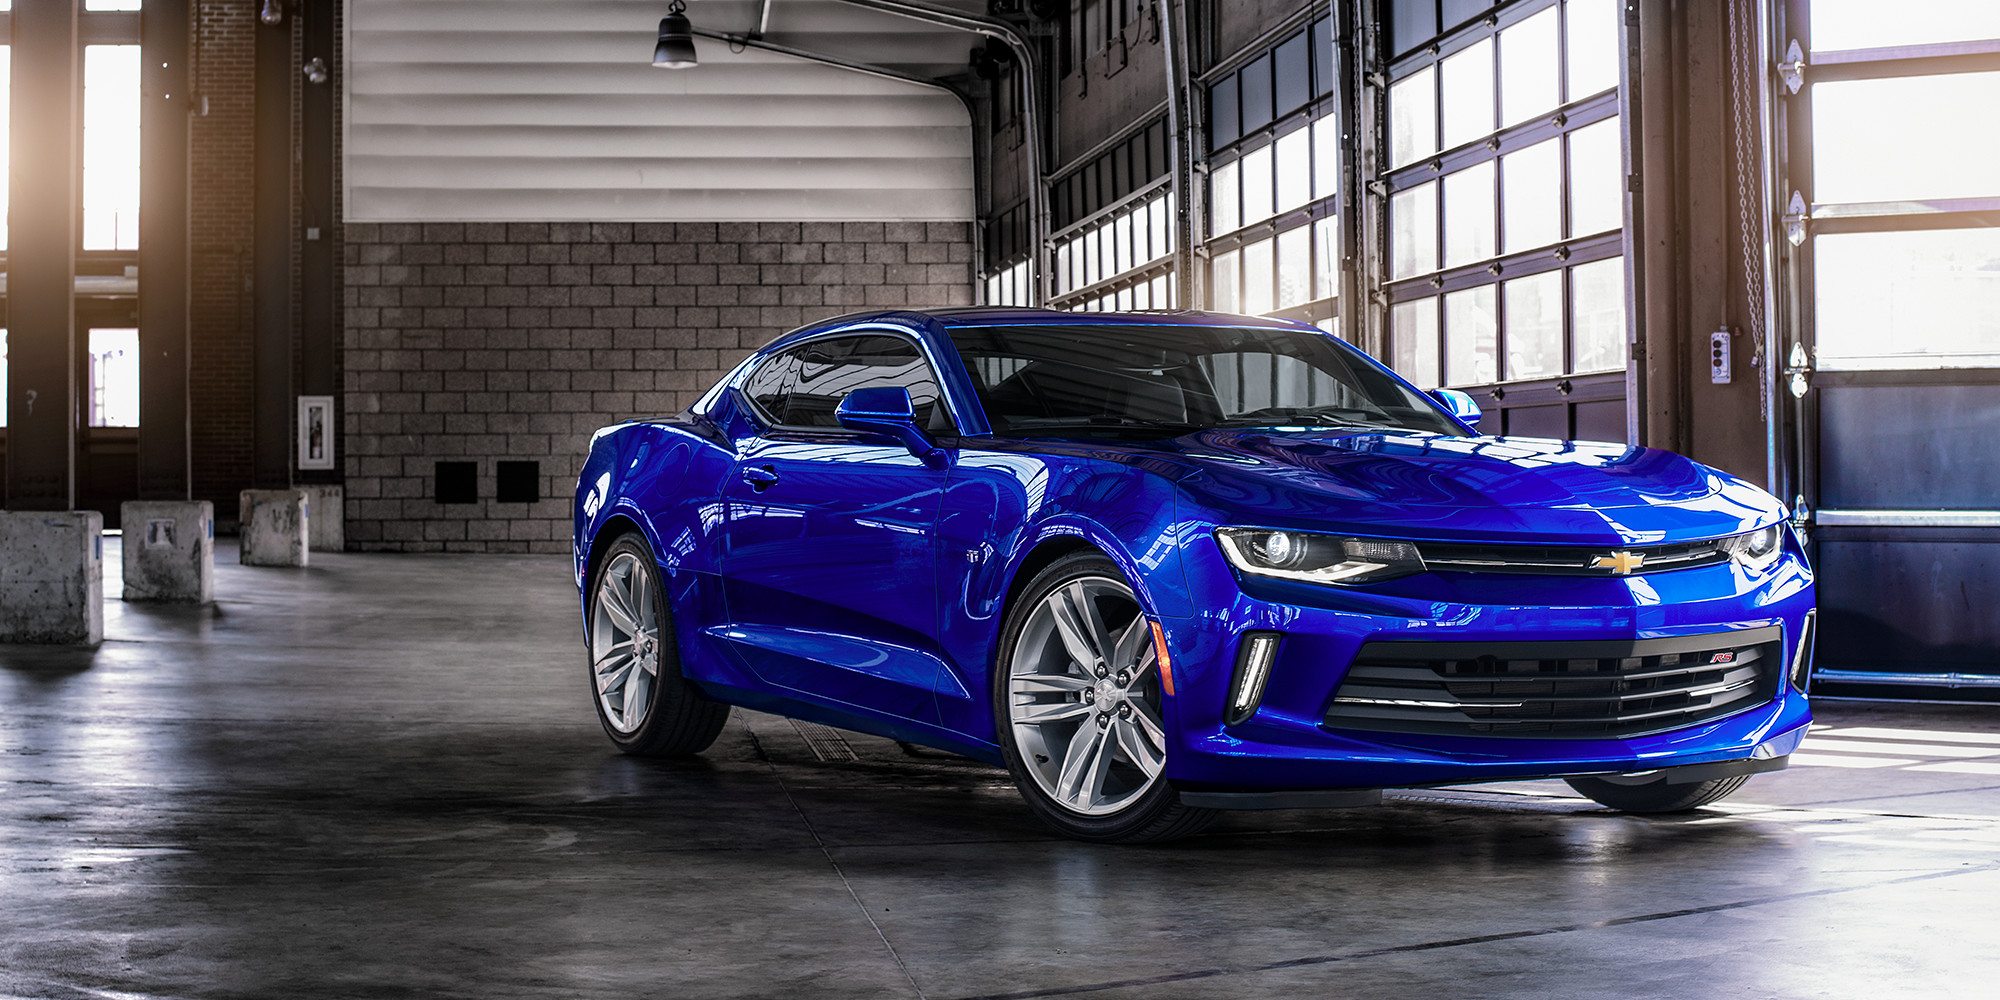 Wonderful 2017 Chevy Camaro For Sale Near Boardman, OH